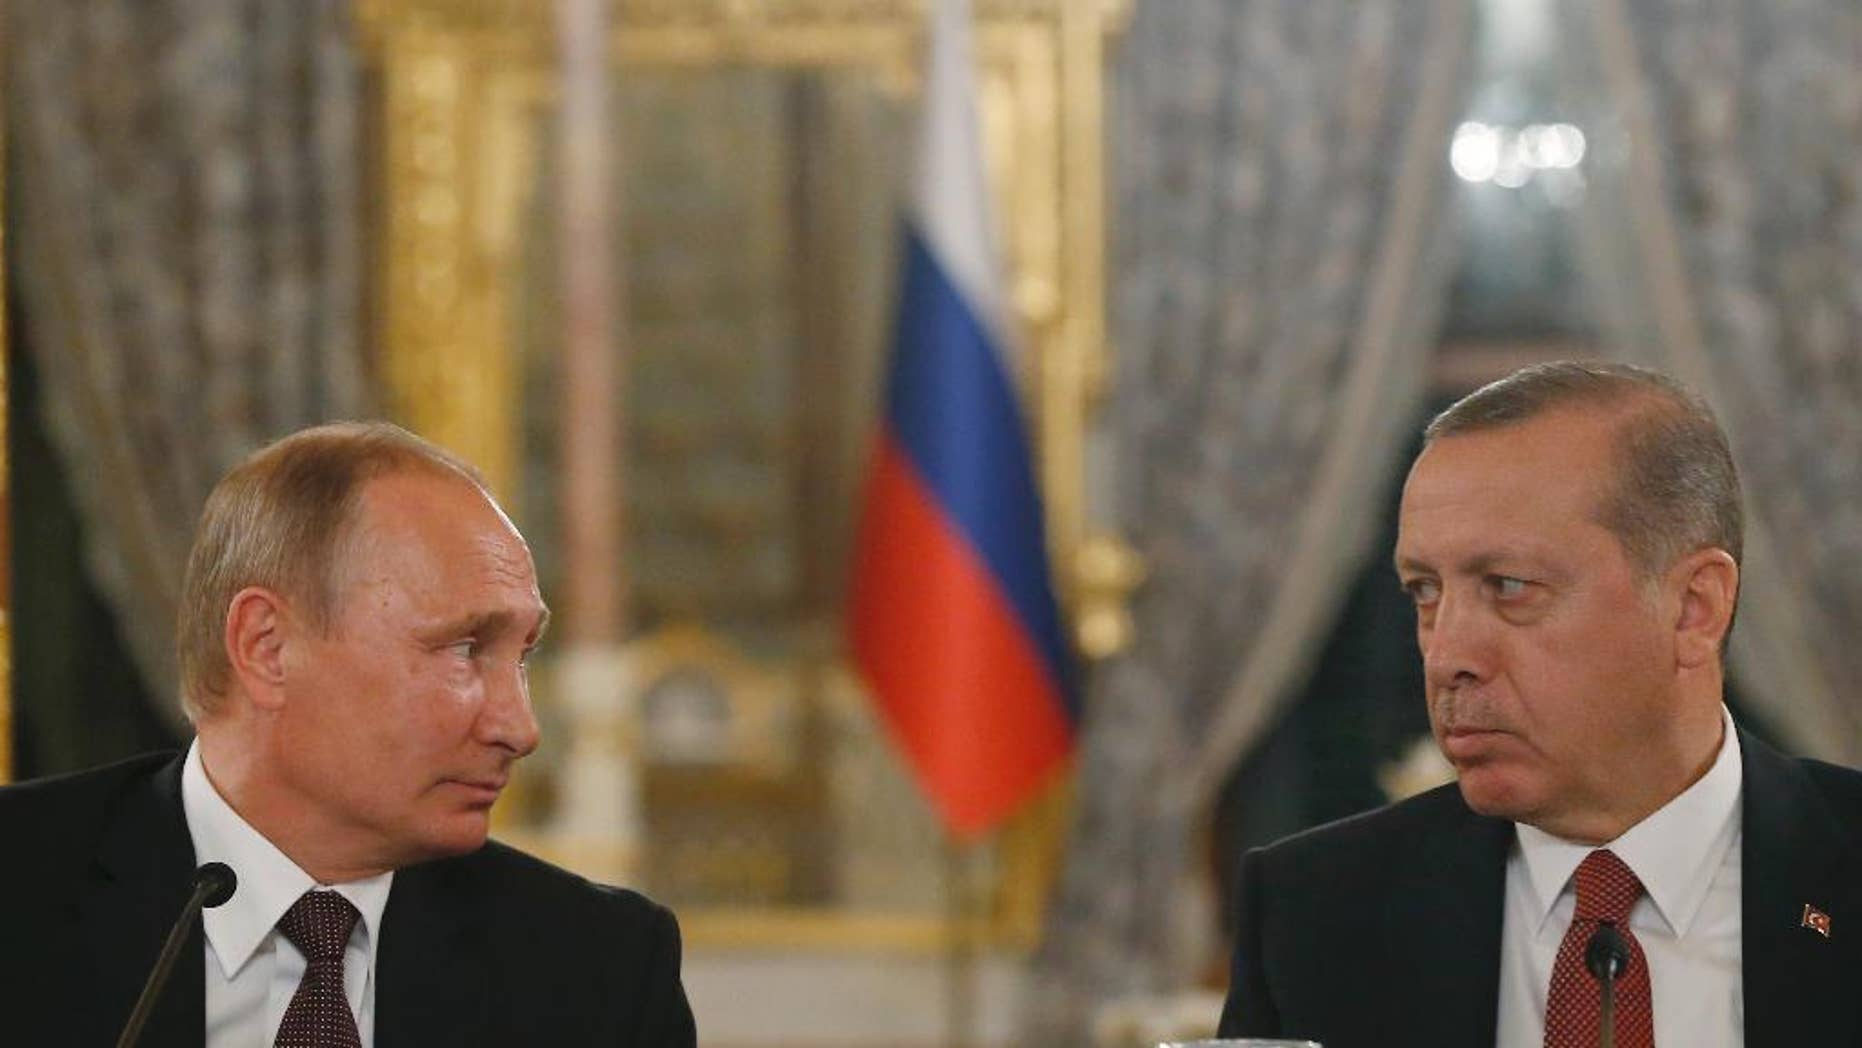 Turkey's President Recep Tayyip Erdogan, right and Russian President Vladimir Putin, left, look at each other during a news conference following their meeting in Istanbul, Monday, Oct. 10, 2016. Putin and Erdogan voiced support for the construction of a gas pipeline from Russia to Turkey, called Turkish Stream, a project that was suspended amid tensions between the two countries. The pipeline would carry Russian natural gas to Turkey and onto European Union countries. (AP Photo/Emrah Gurel)